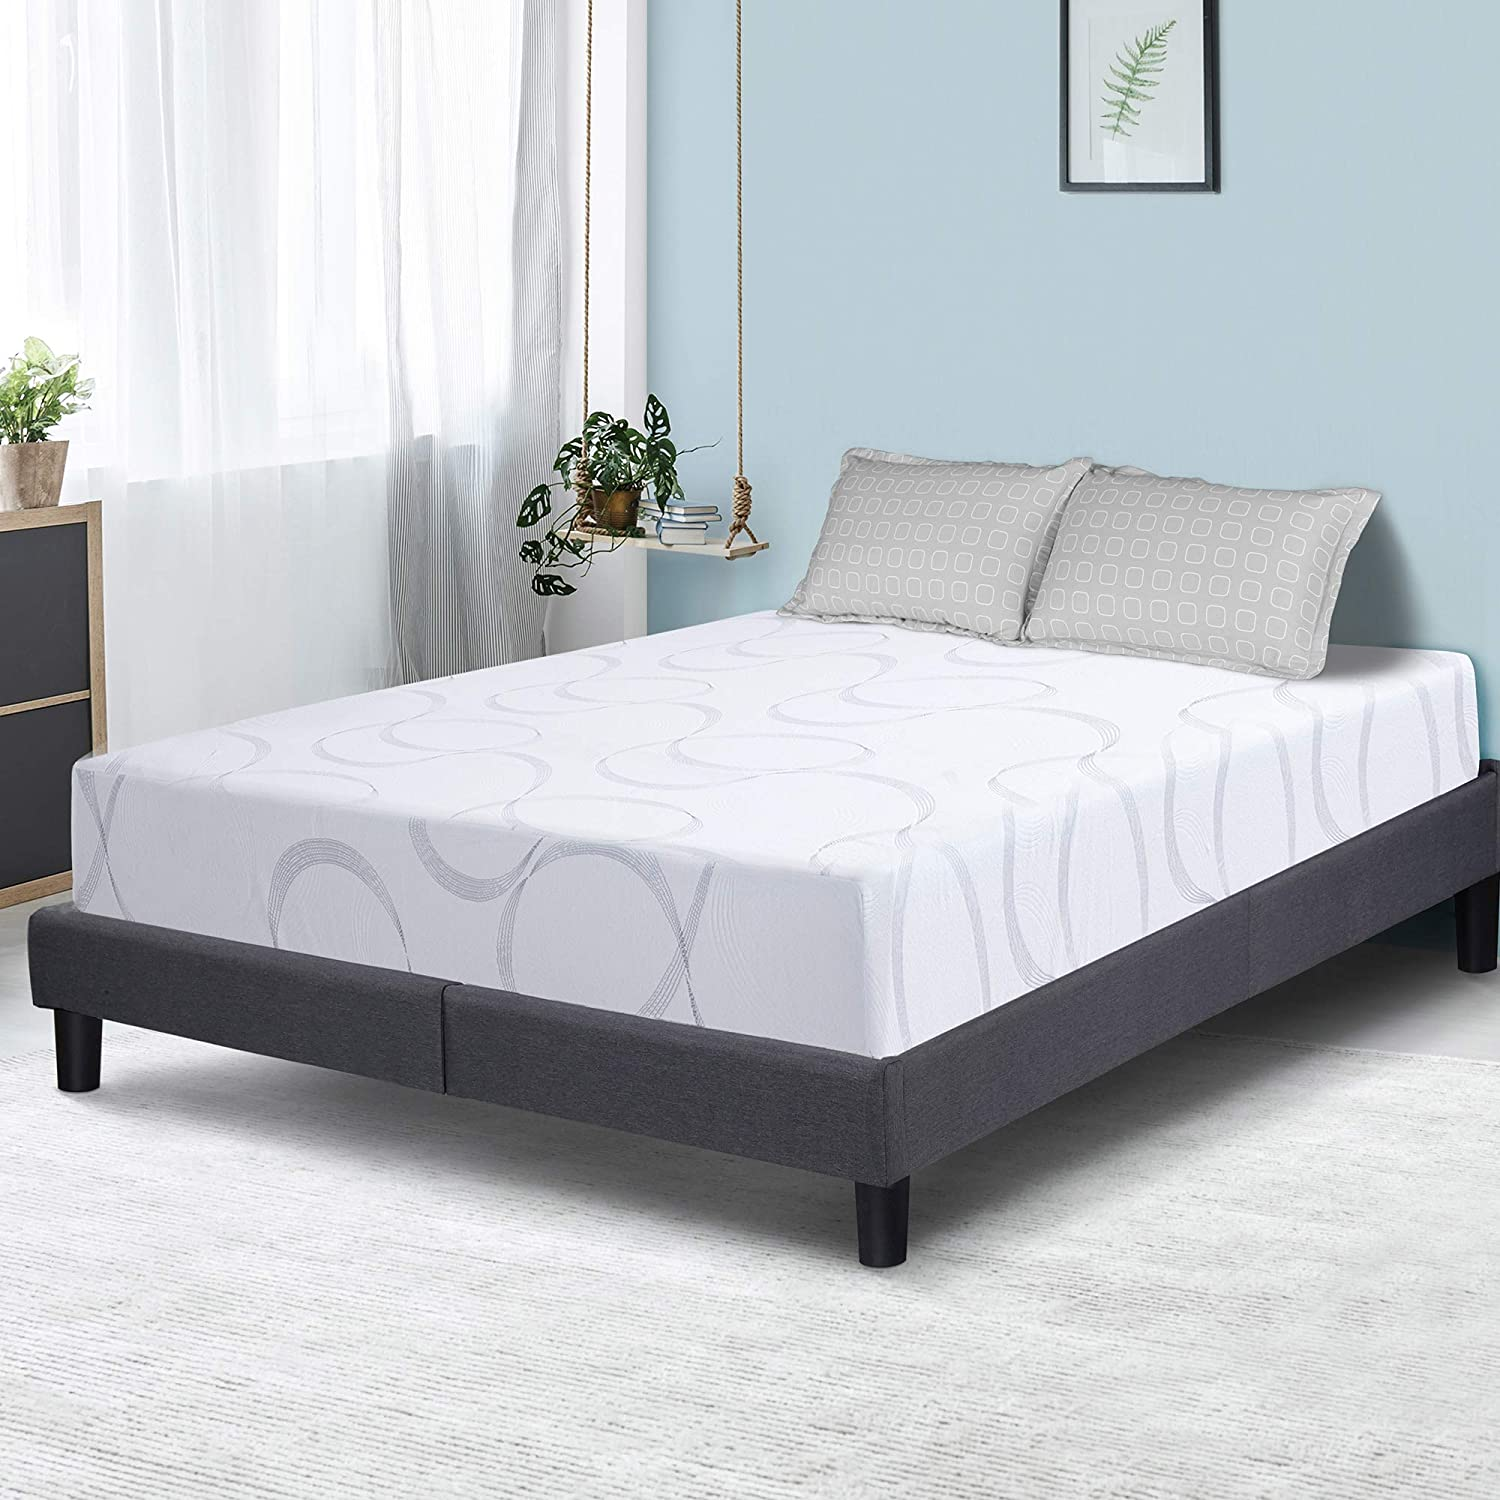 PrimaSleep 9 inch Aurora Multi-Layered I-Gel Infused Memory Foam Mattress, King